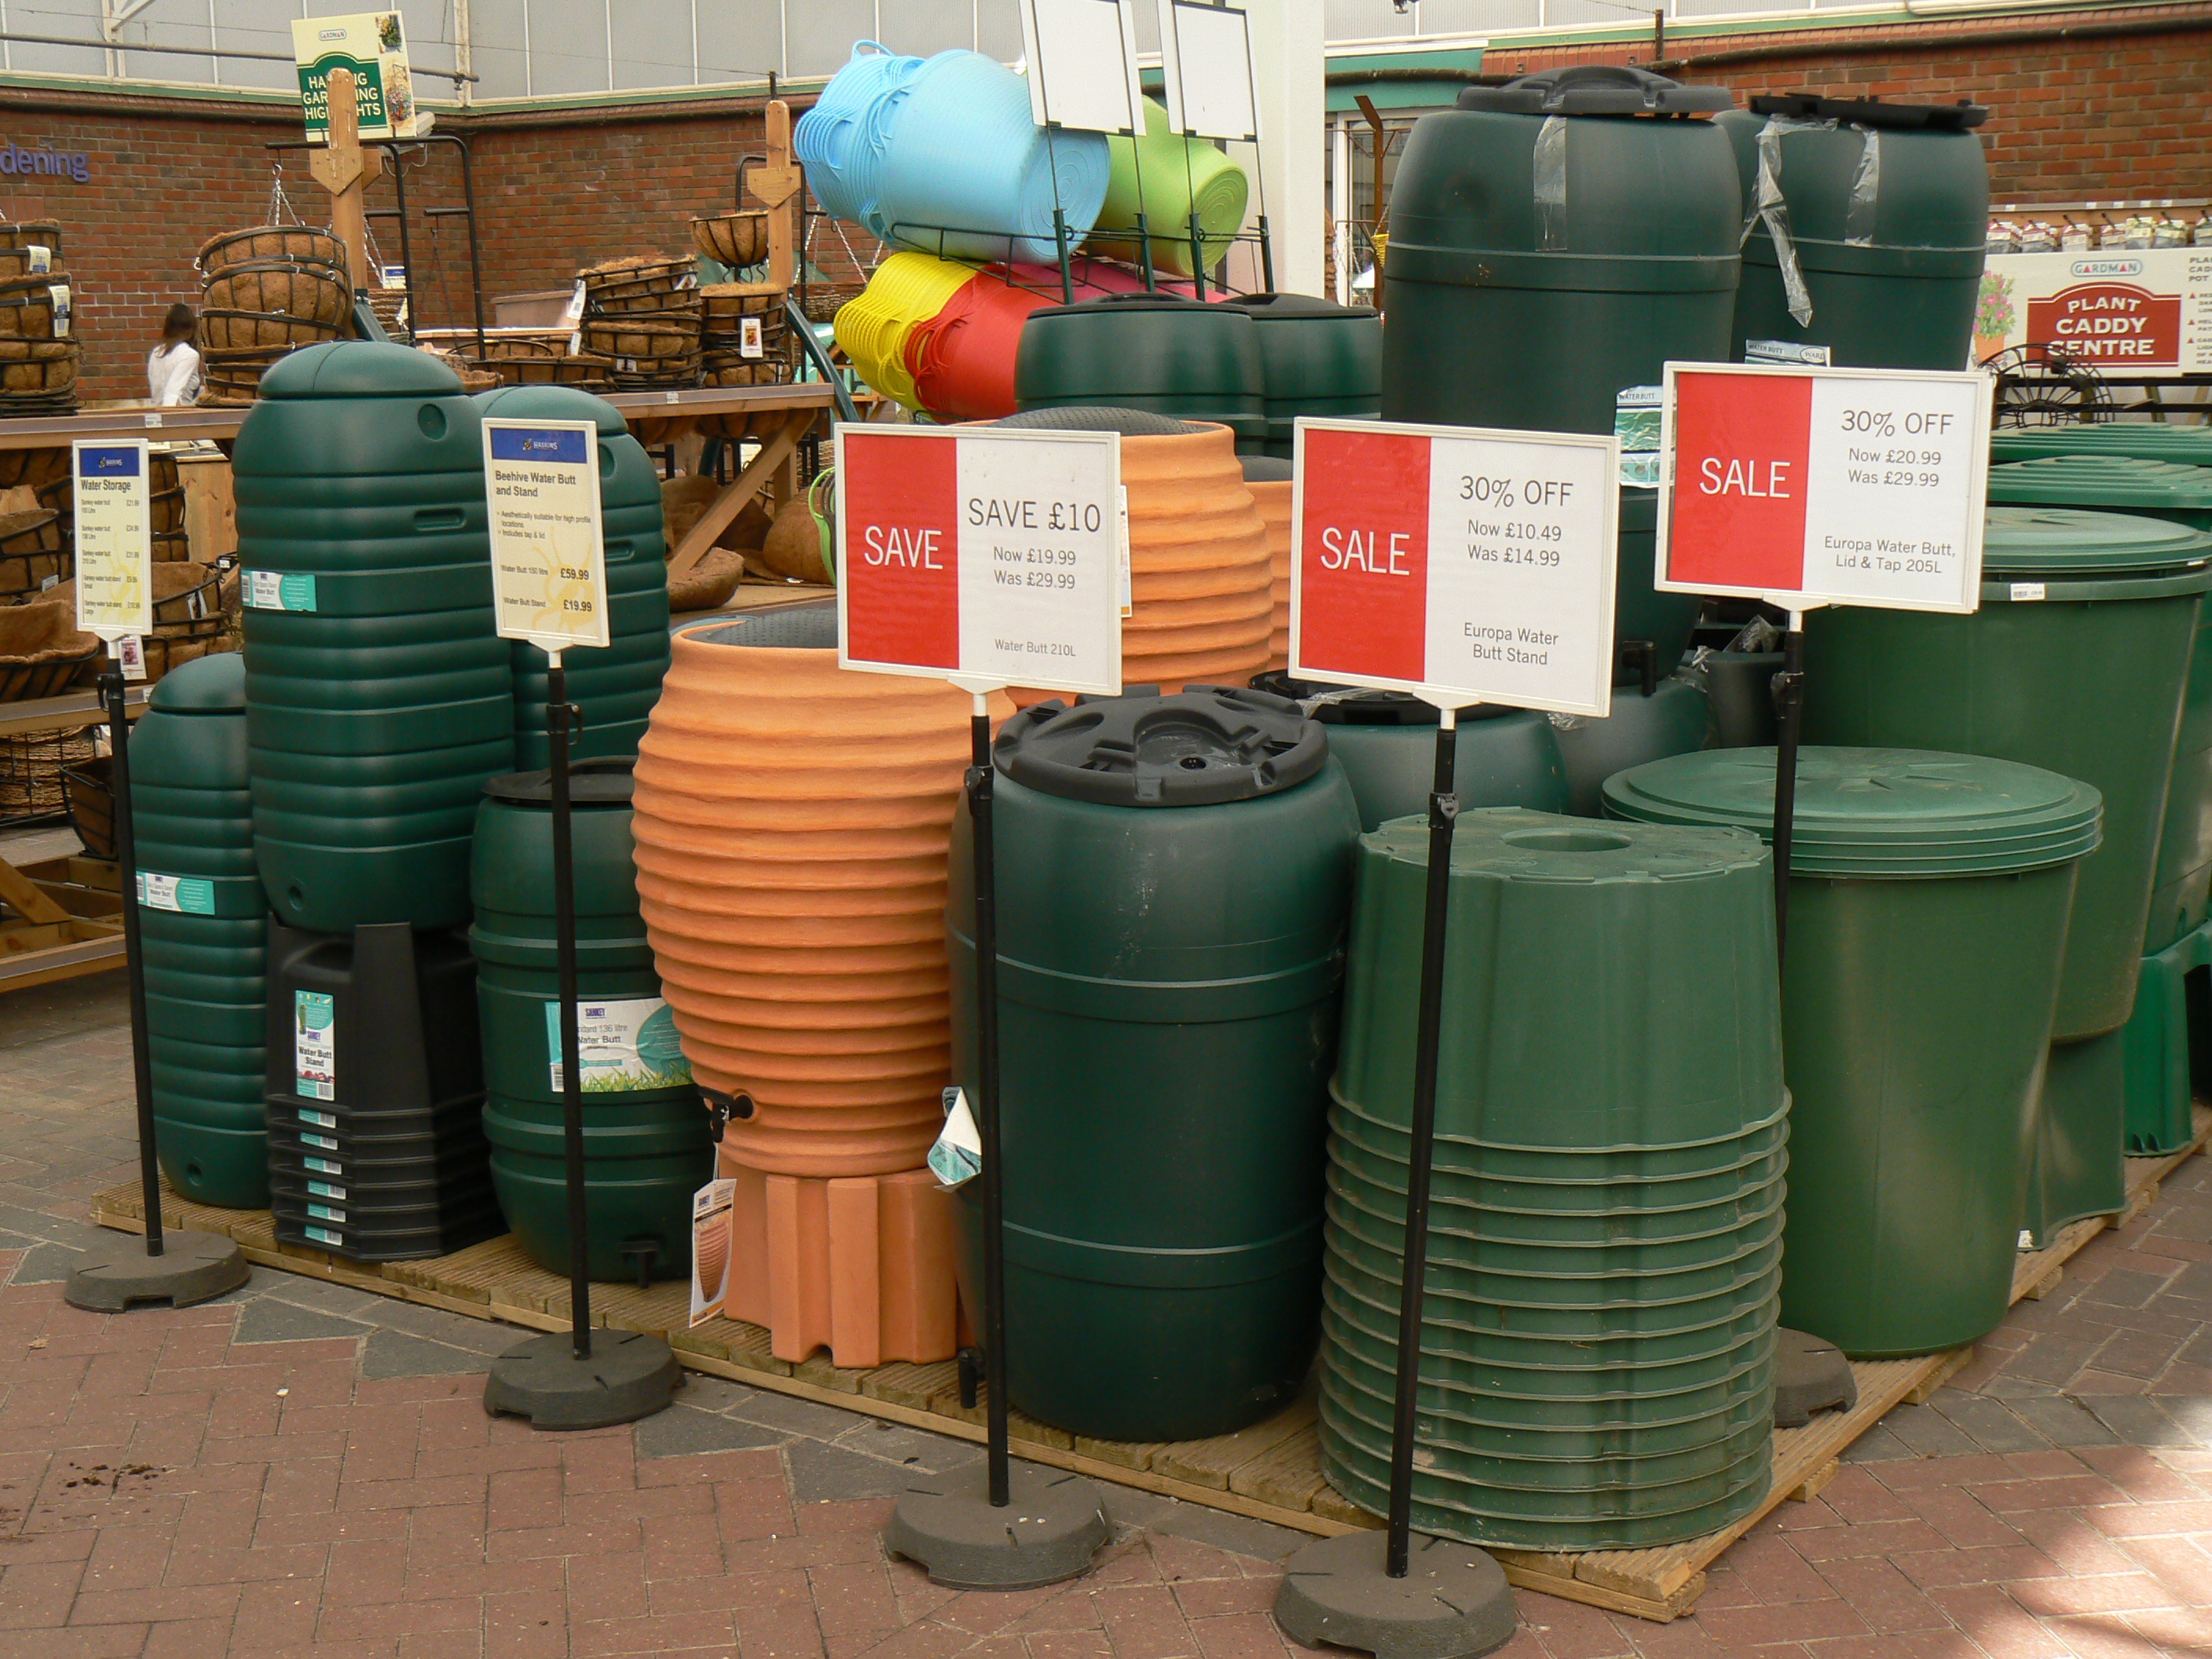 Hosepipe Ban Leads To 800 Rise In Water Butt Sales